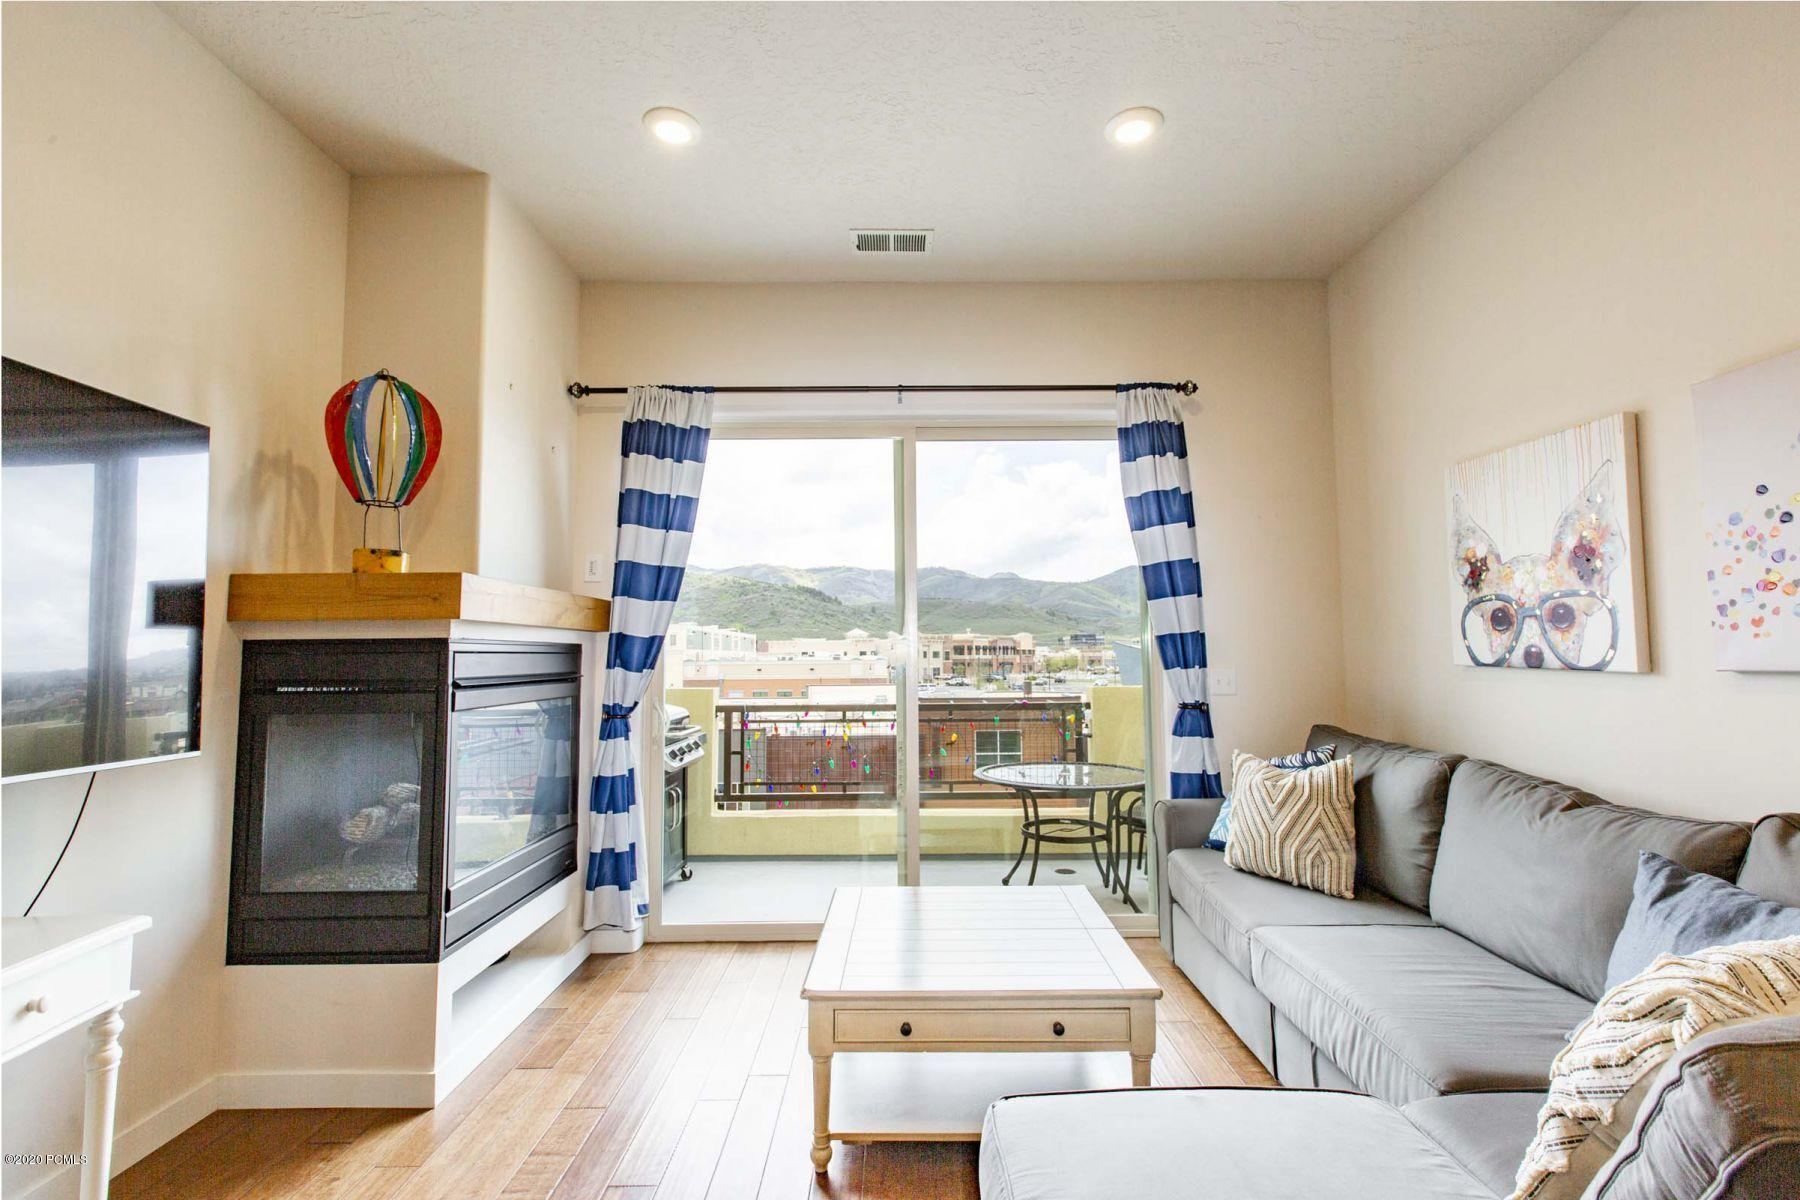 6169 Park Lane, Park City, Utah 84098, 2 Bedrooms Bedrooms, ,2 BathroomsBathrooms,Condominium,For Sale,Park Lane,20190109112430415765000000